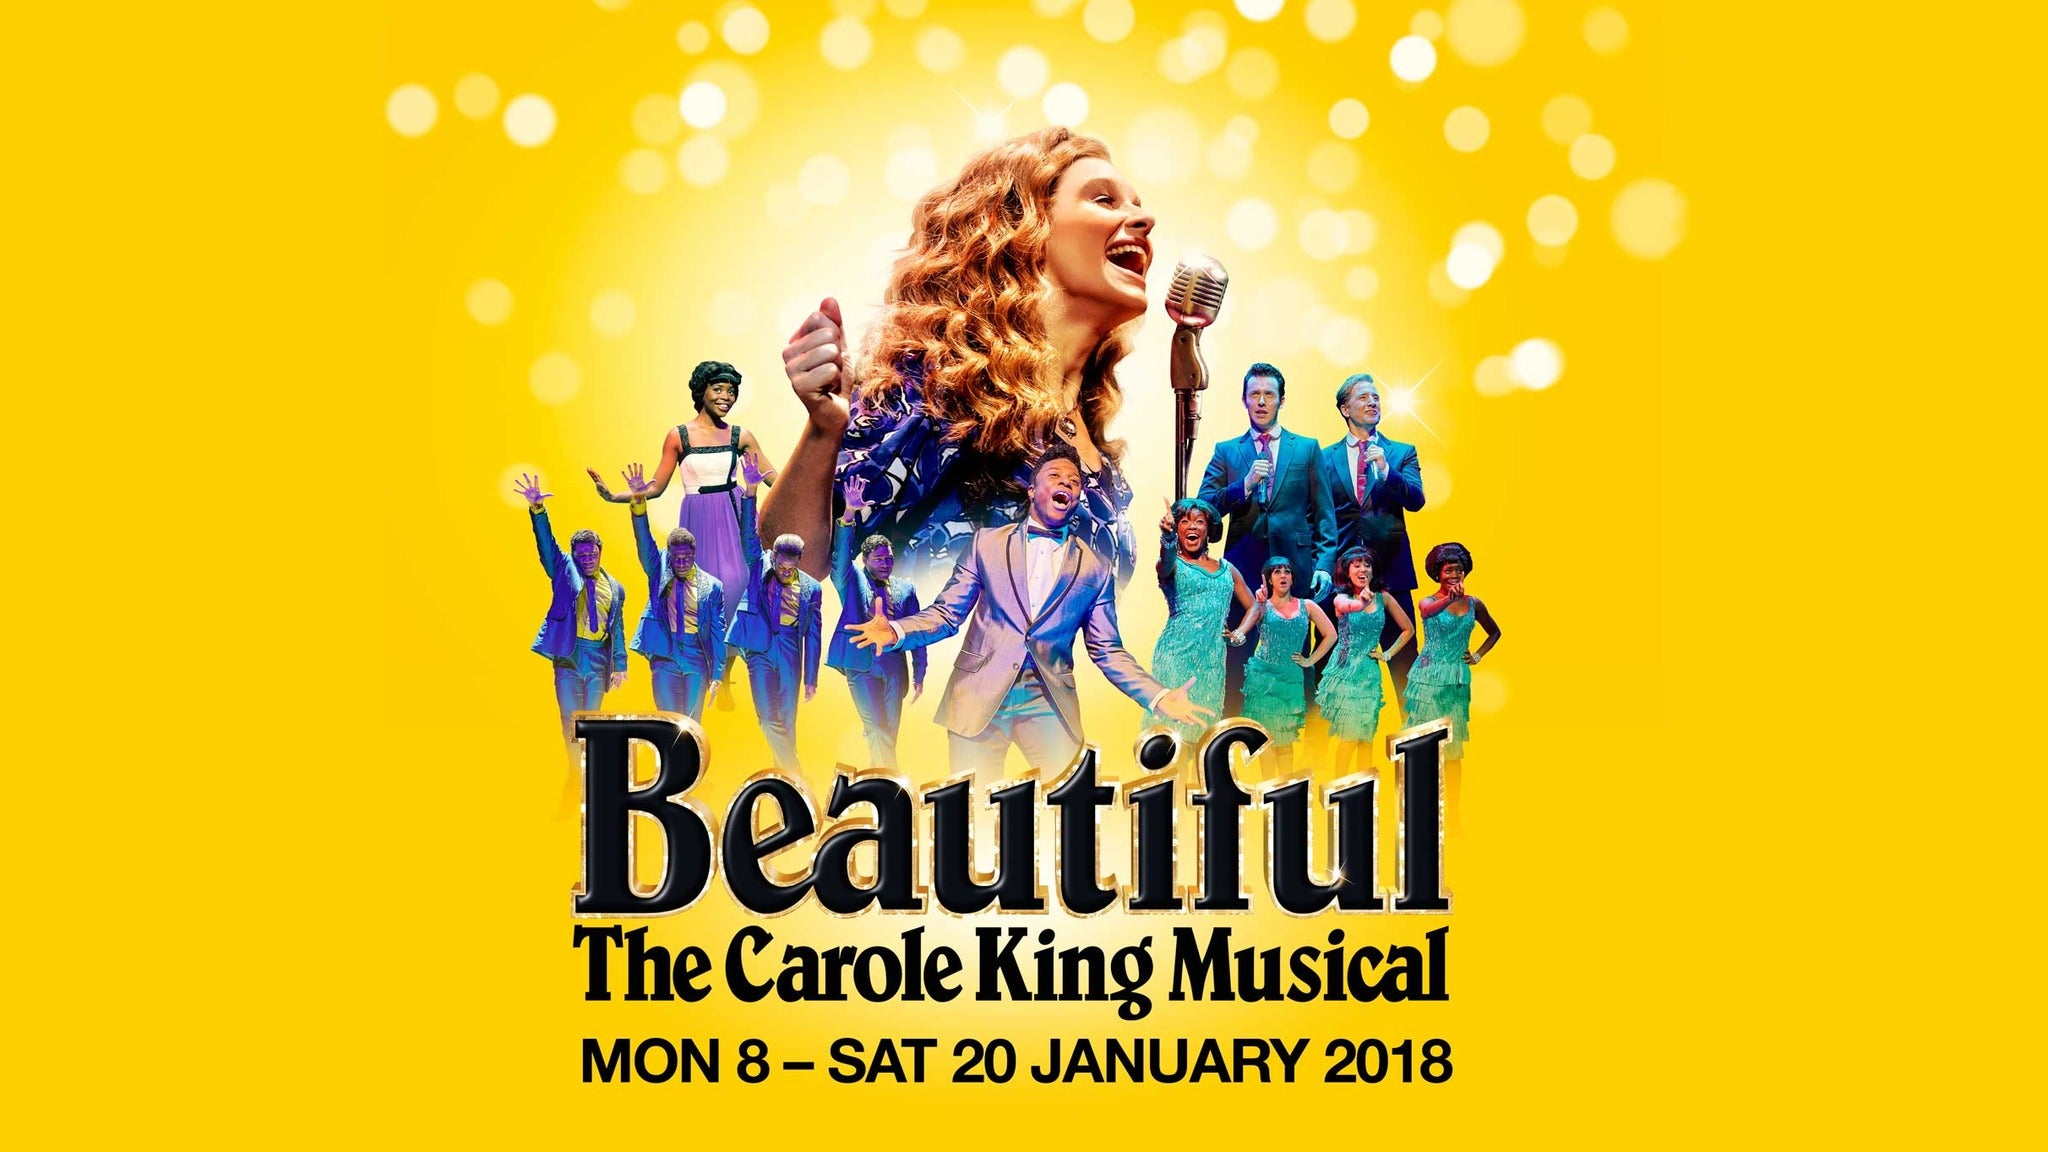 Beautiful: the Carole King Musical (Touring) - Grand Rapids, MI 49503